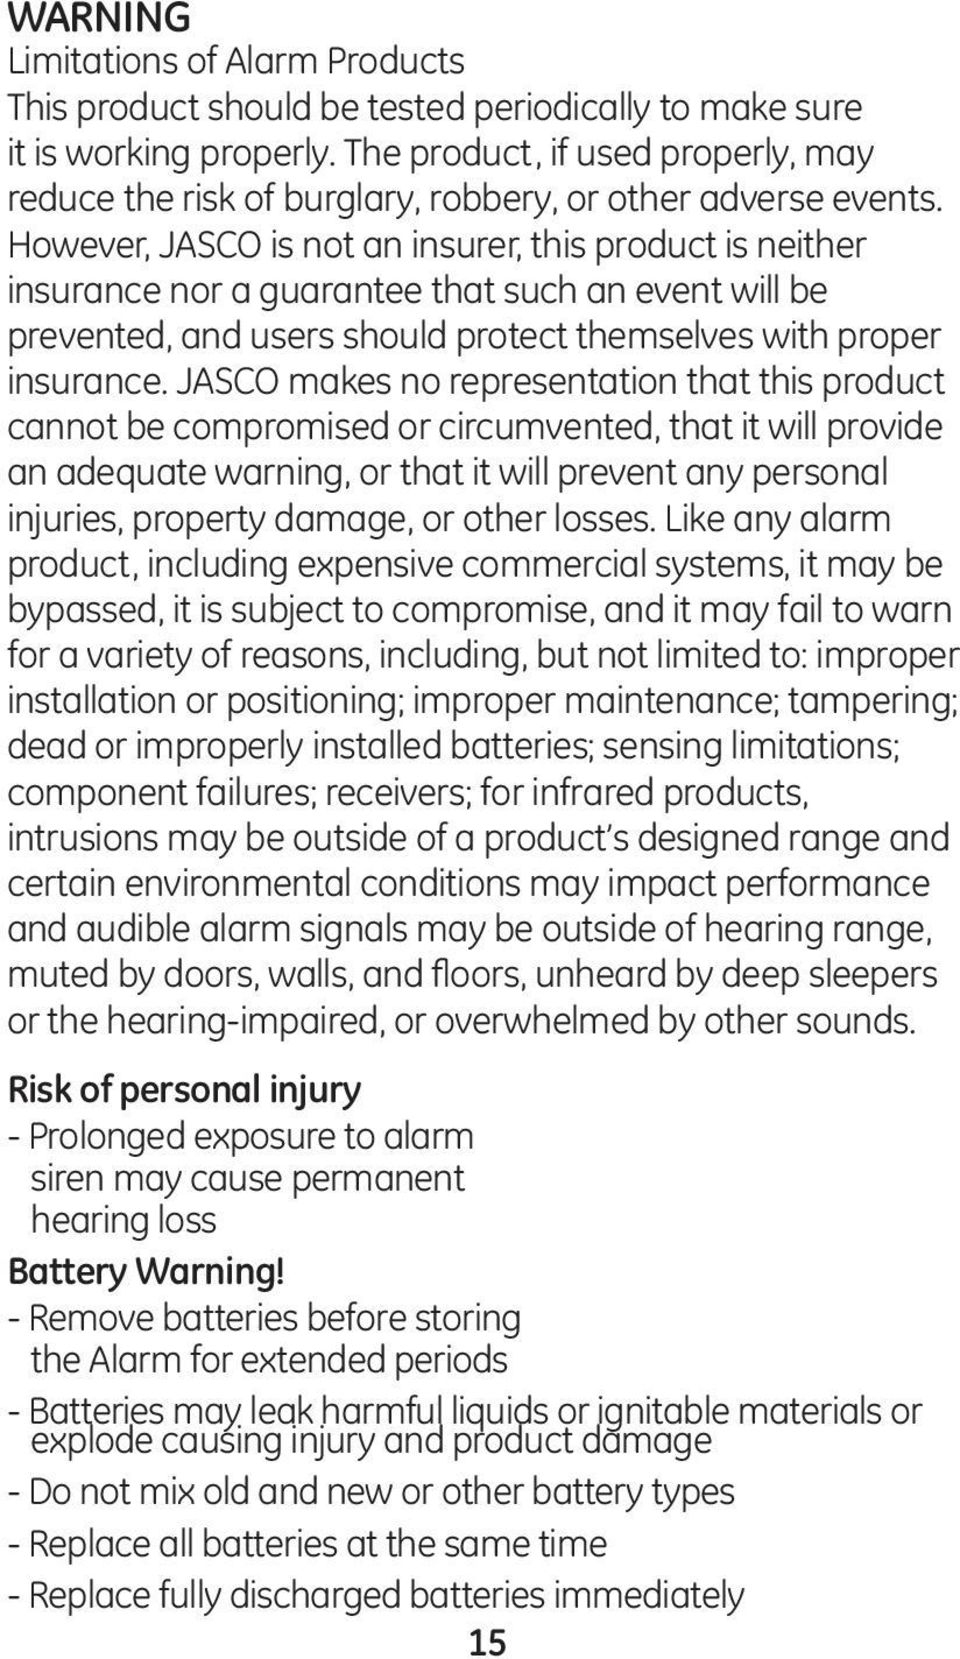 However, JASCO is not an insurer, this product is neither insurance nor a guarantee that such an event will be prevented, and users should protect themselves with proper insurance.